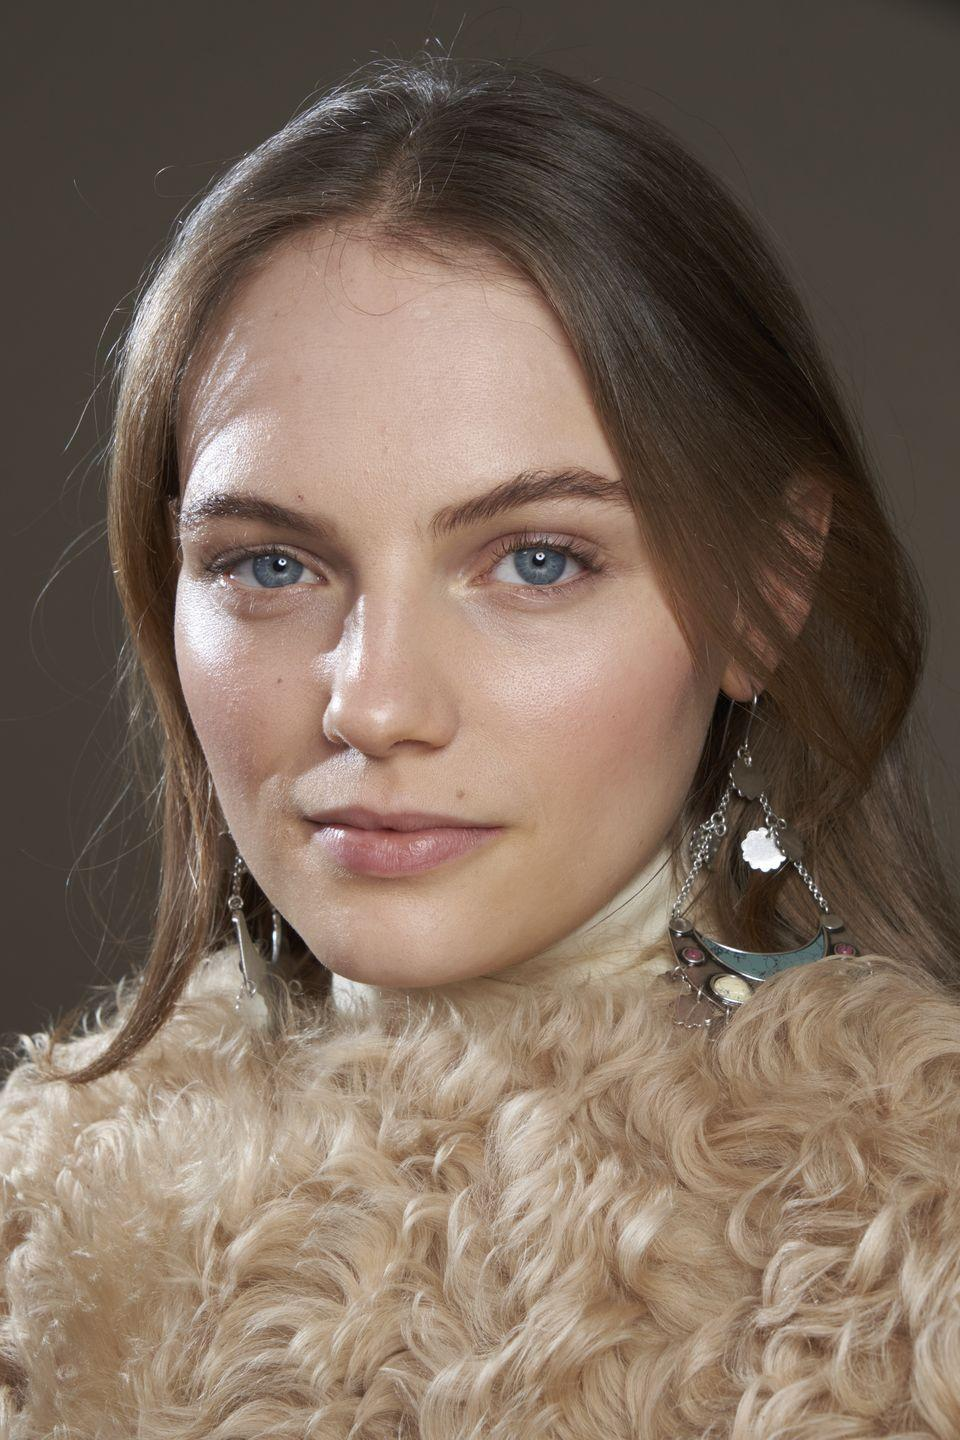 <p> New Year's resolutions are usually gym-themed. Not this time. When the enthusiasm runs out, it's good to know we can cheat a post-exercise glow with beauty products instead.</p>